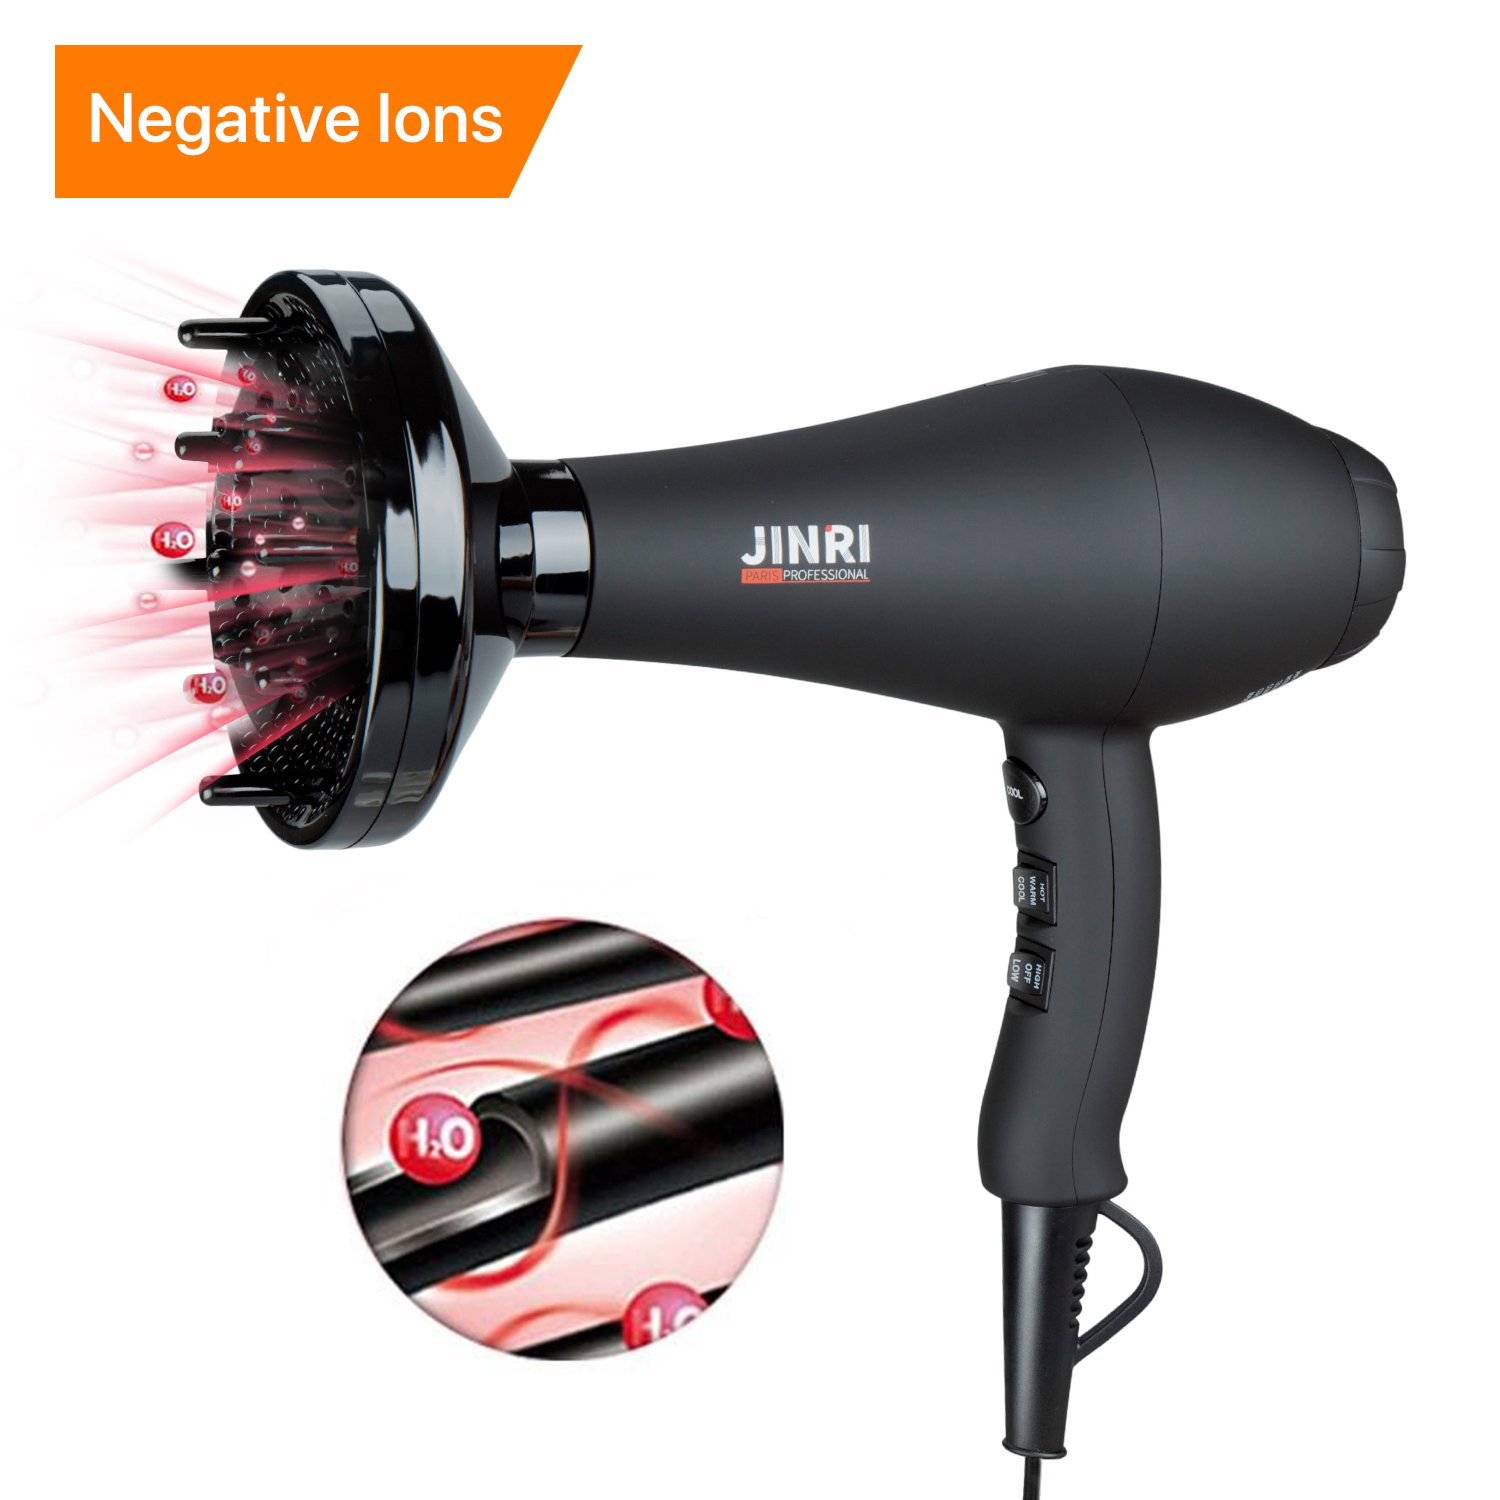 Jinri Hair Dryer Professional Salon 1875W AC Motor Negative Ionic Far Infrared Blow Dryer with Diffuser Straightenning and 2 Speed 3 Heat Setting